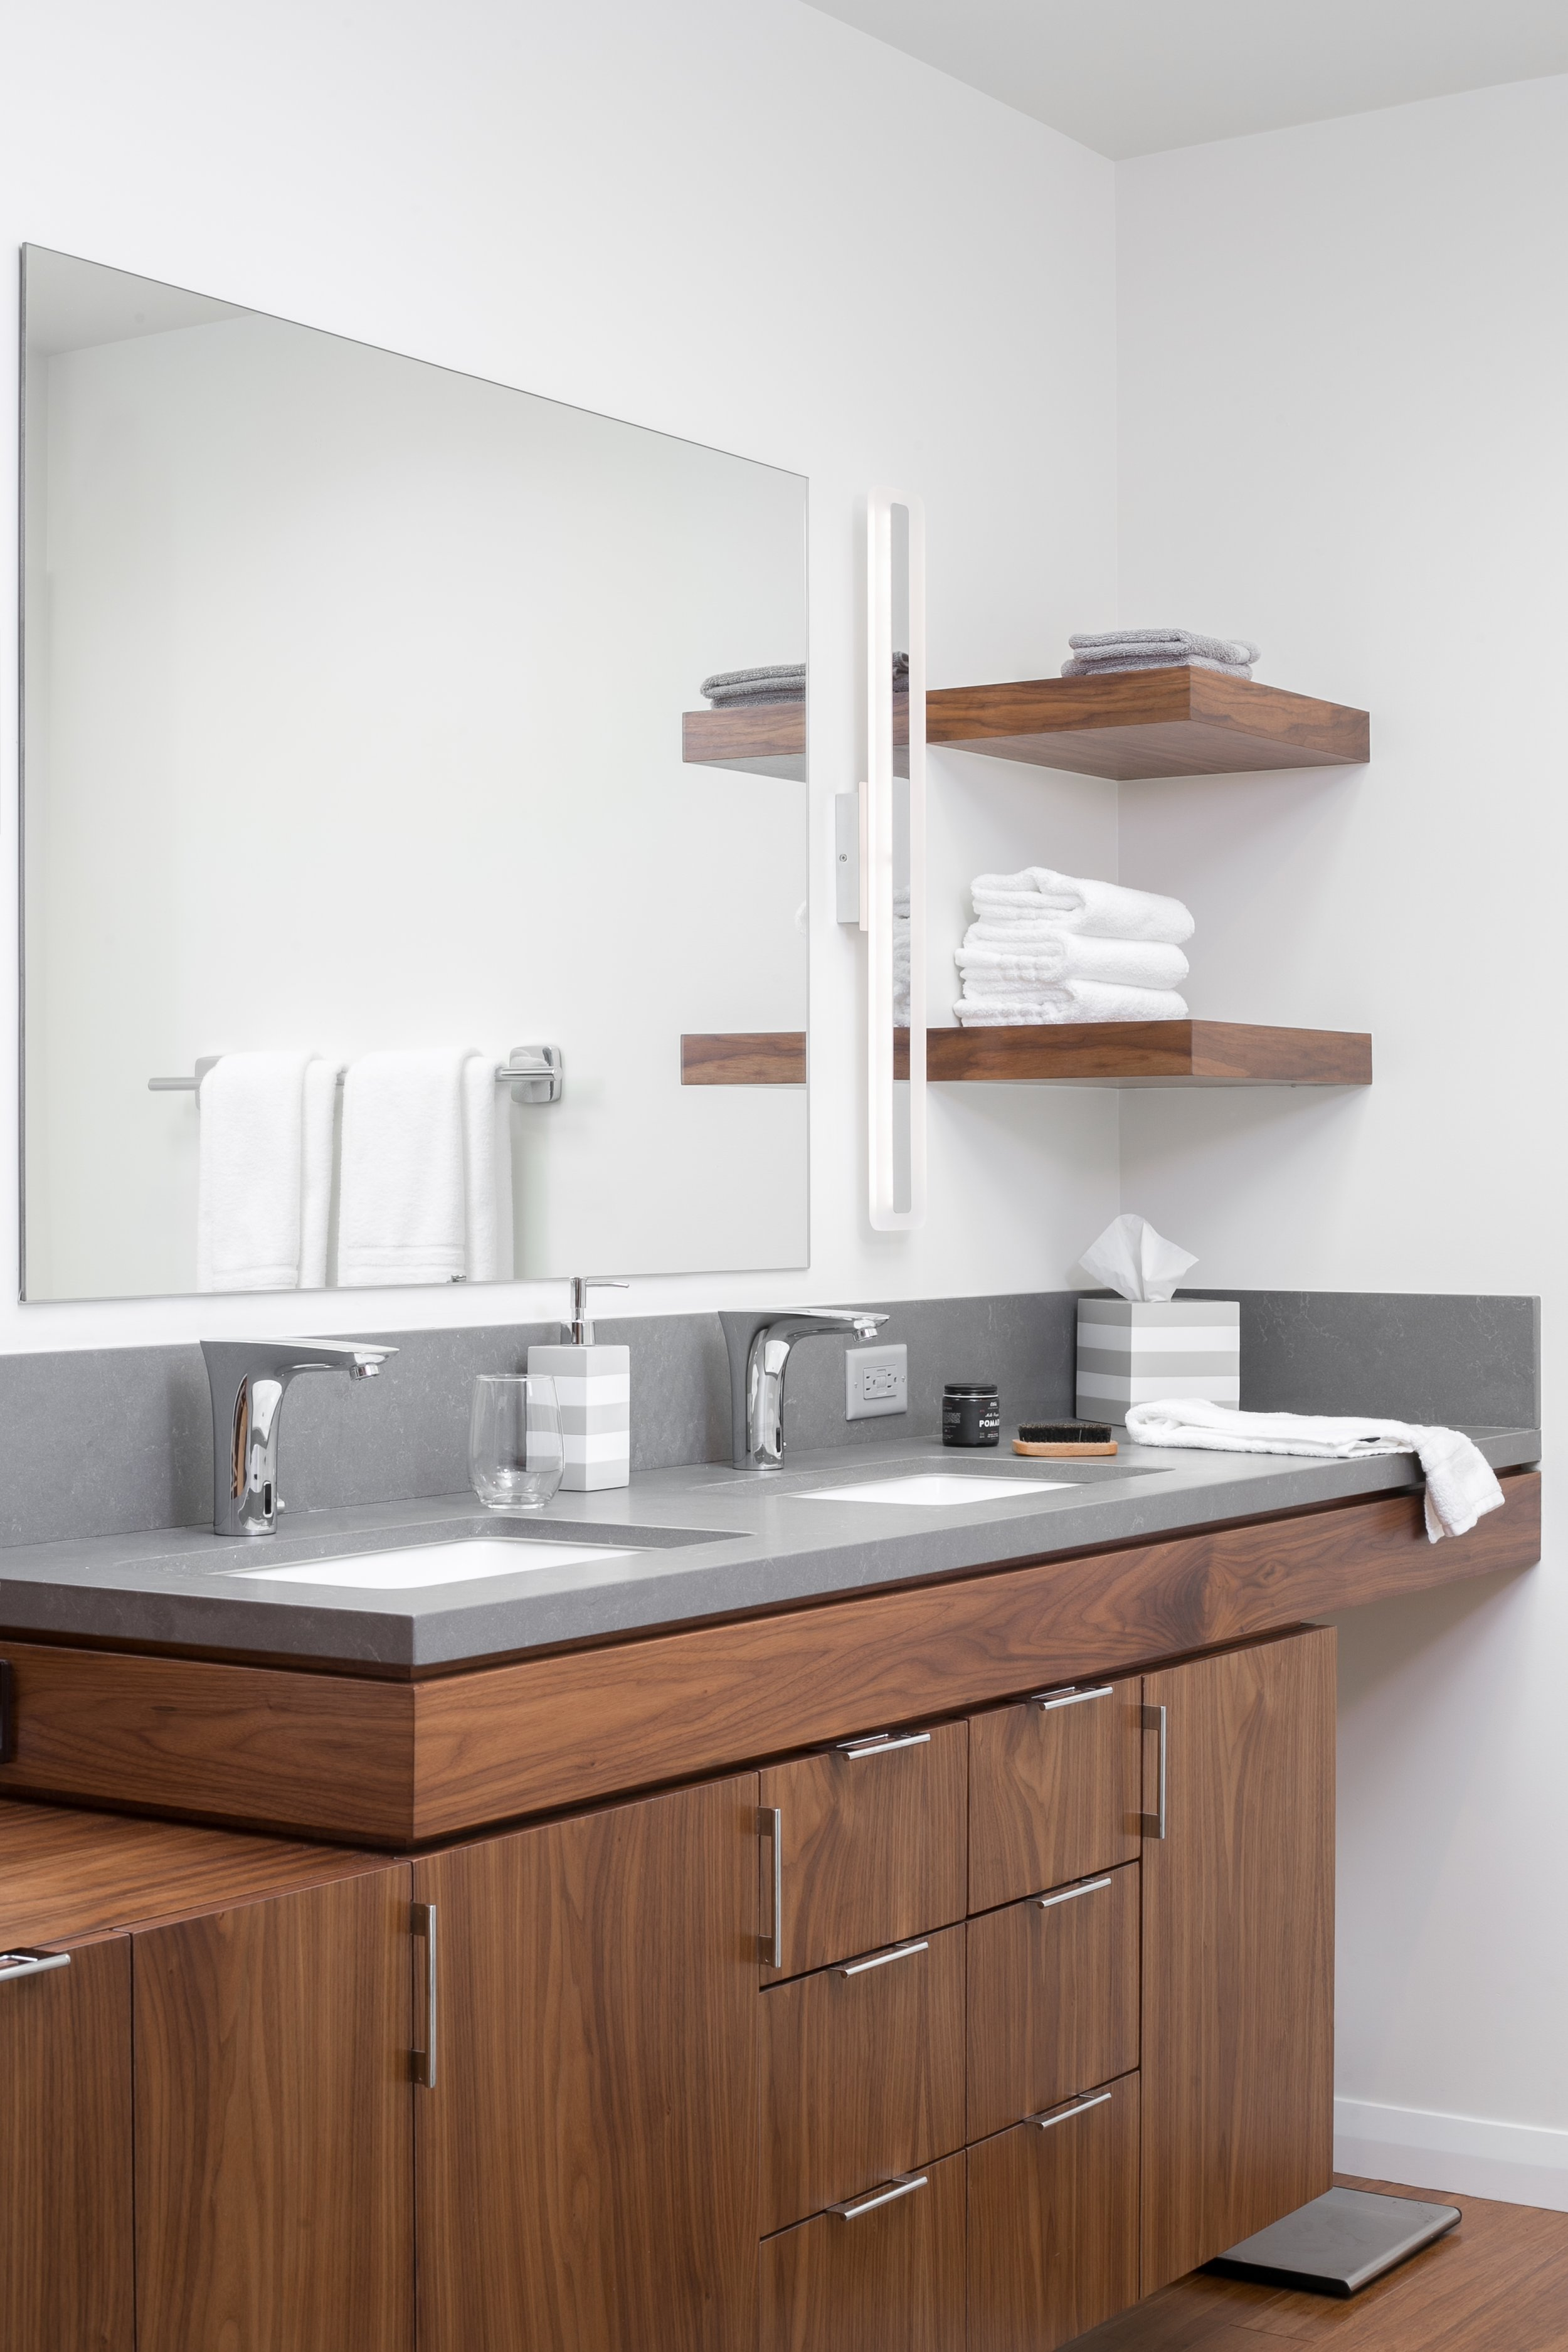 The minimalism and clean lines of the walnut cabinetry, large mirror and wall sconces combine perfectly warmth and modern design